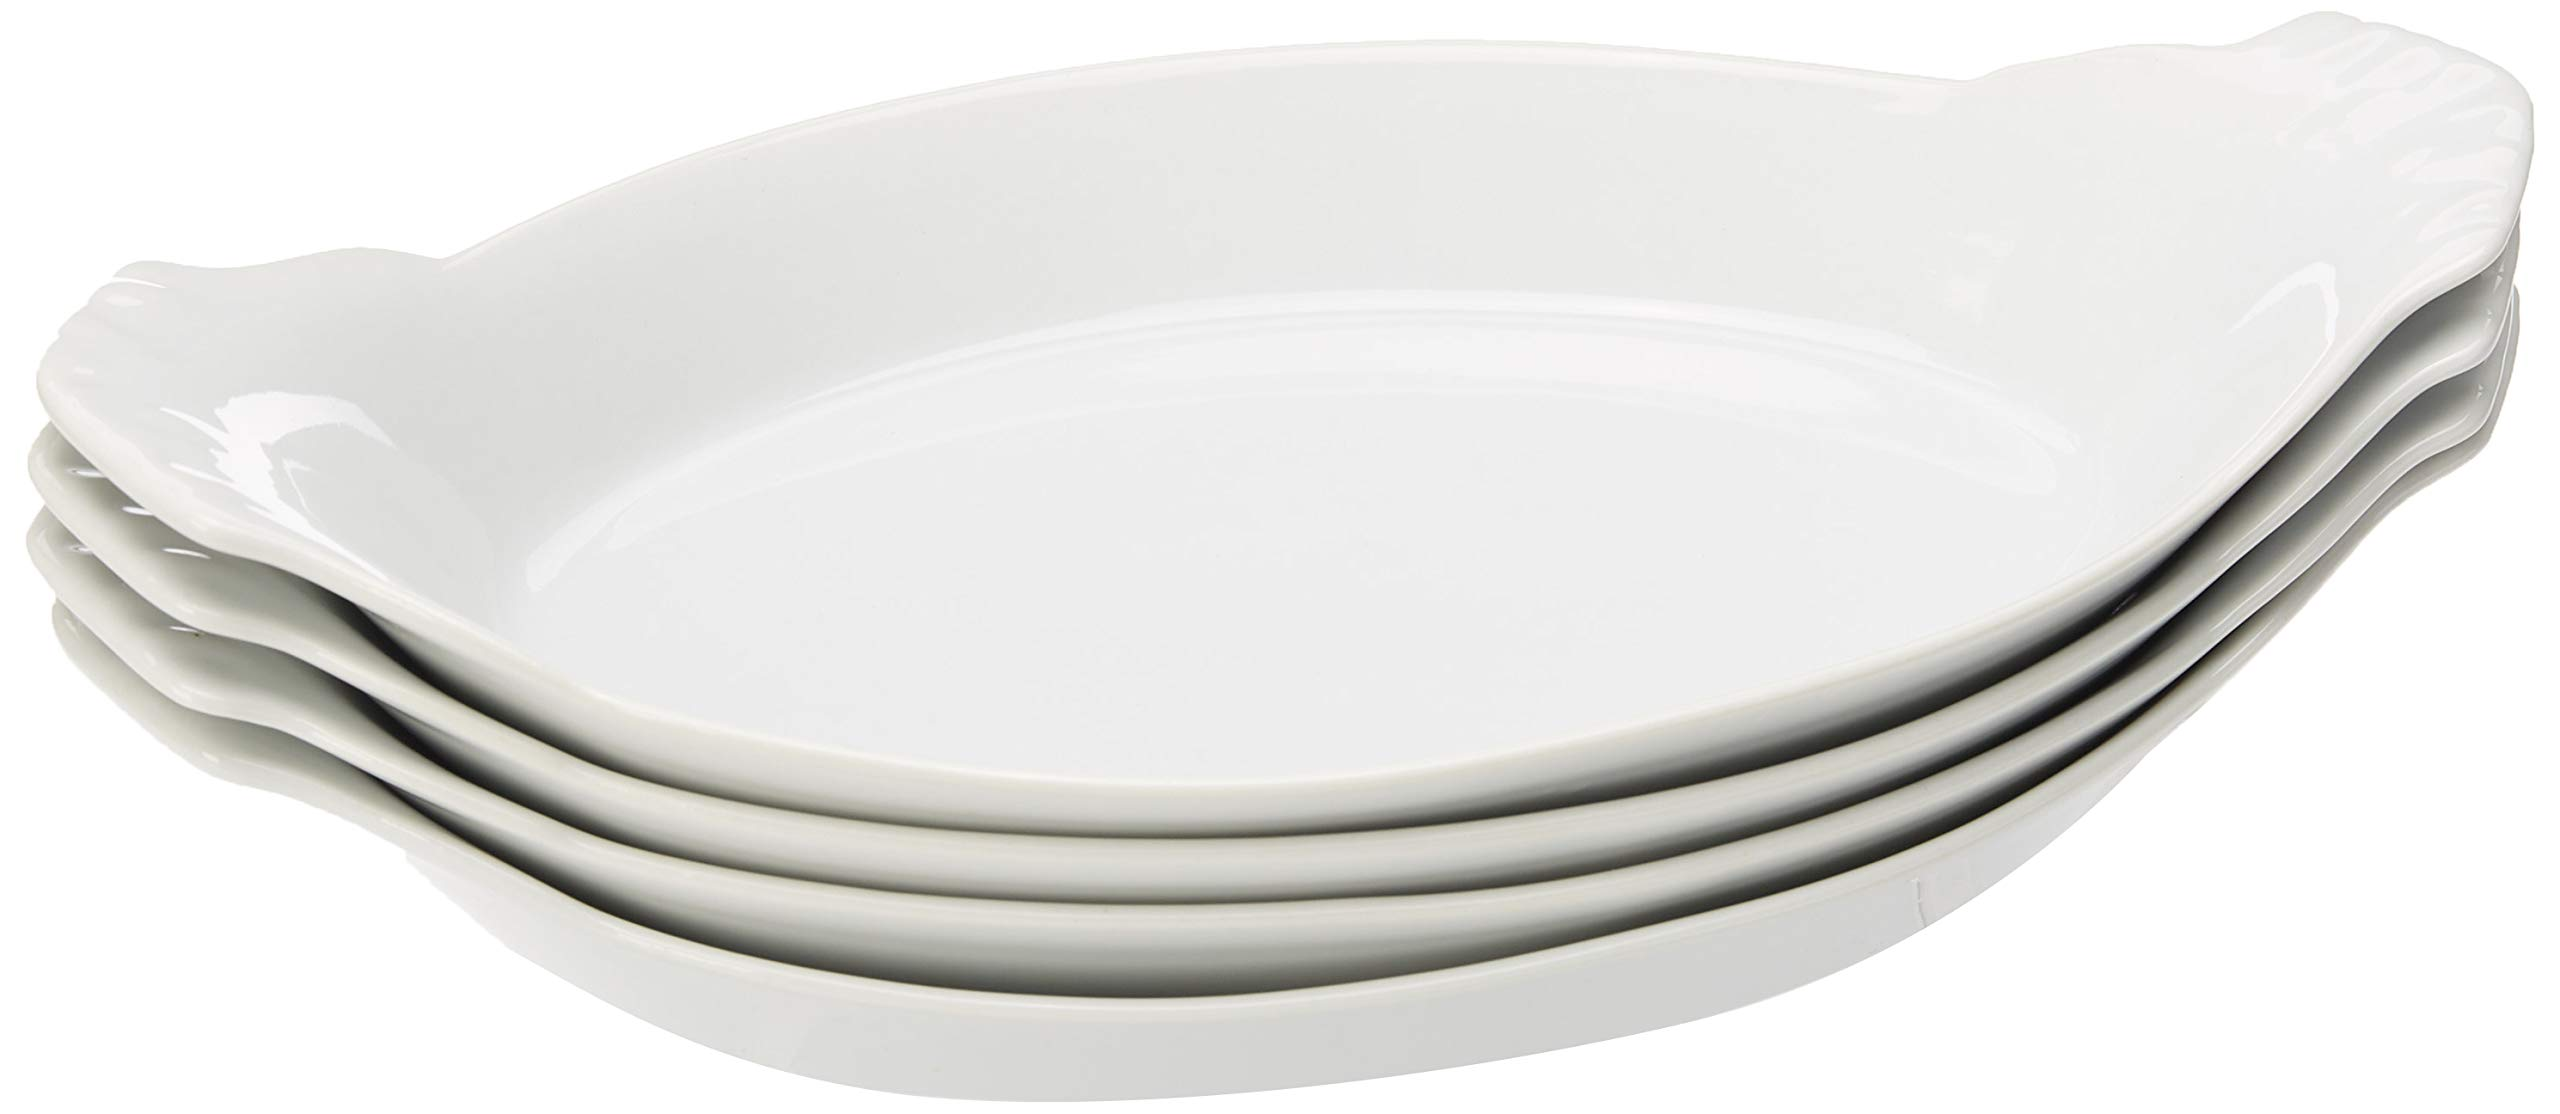 HIC Oval Au Gratin Baking Dishes, Fine White Porcelain, 10-Inch, Set of 4 by HIC Harold Import Co.